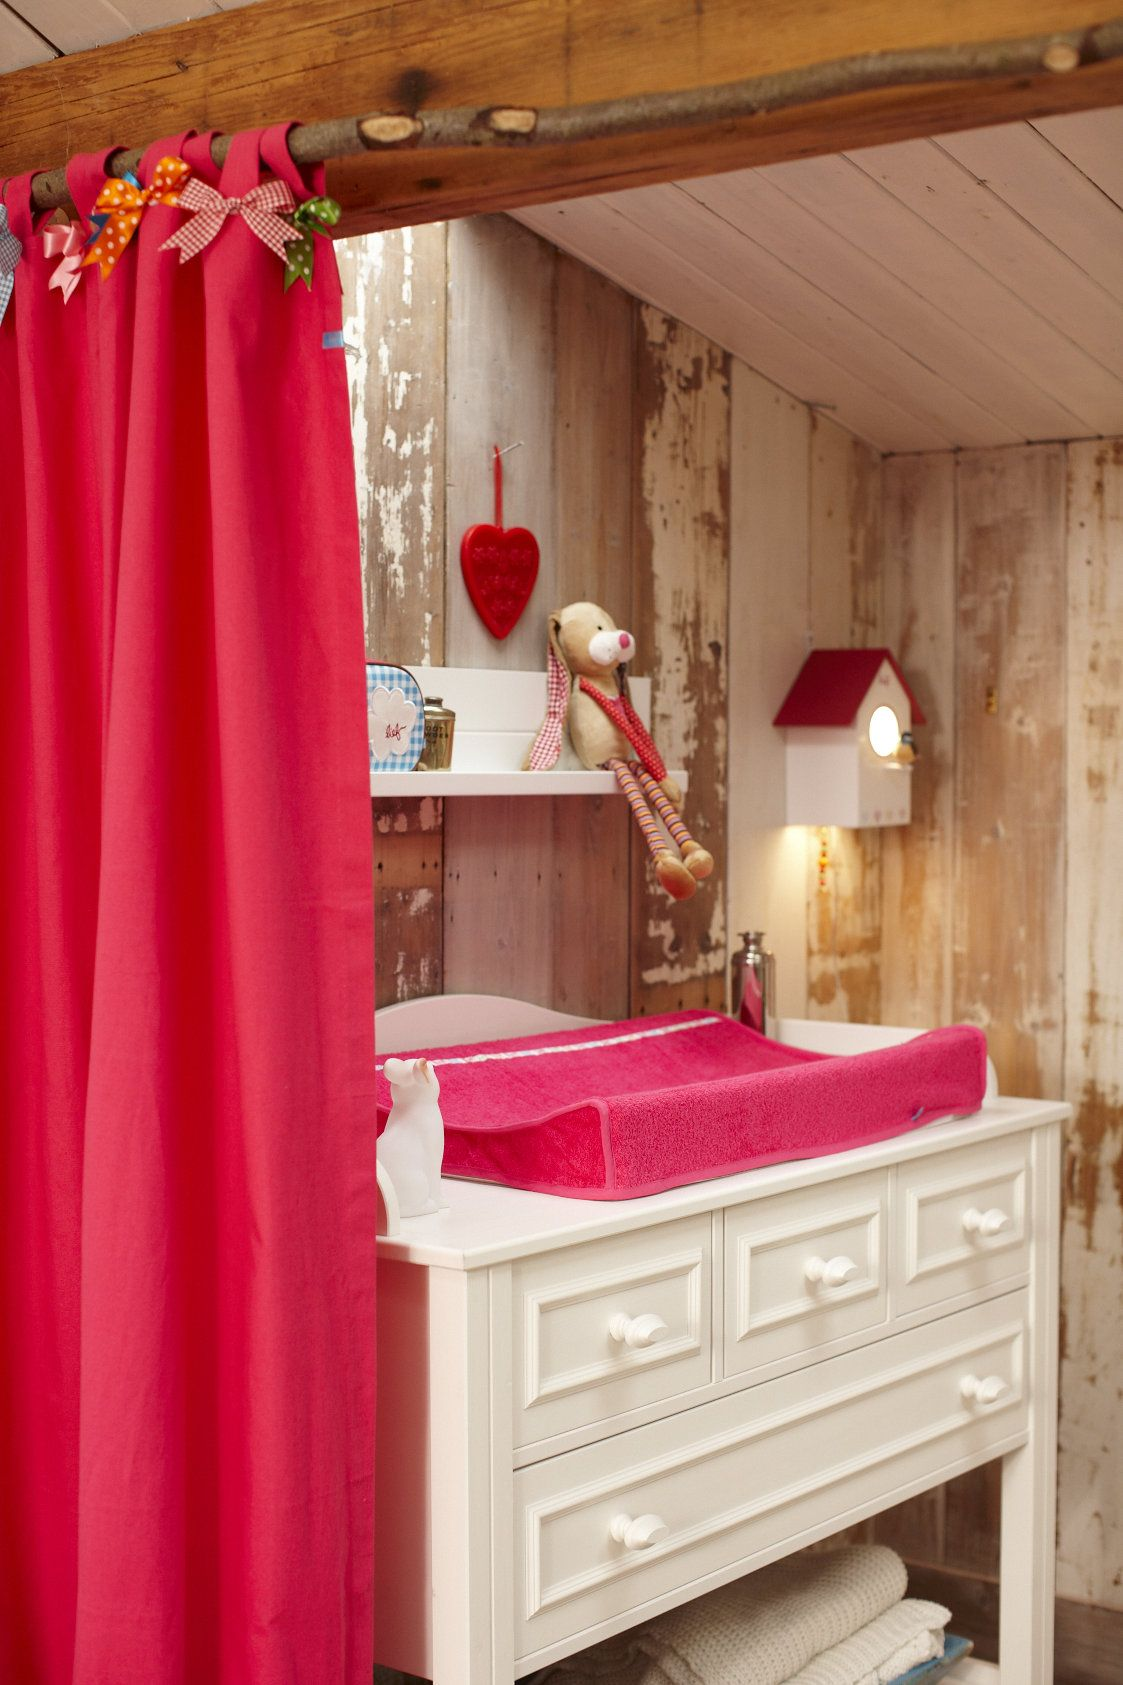 commode & curtains lief! lifestyle - Lief! lifestyle   Pinterest ...